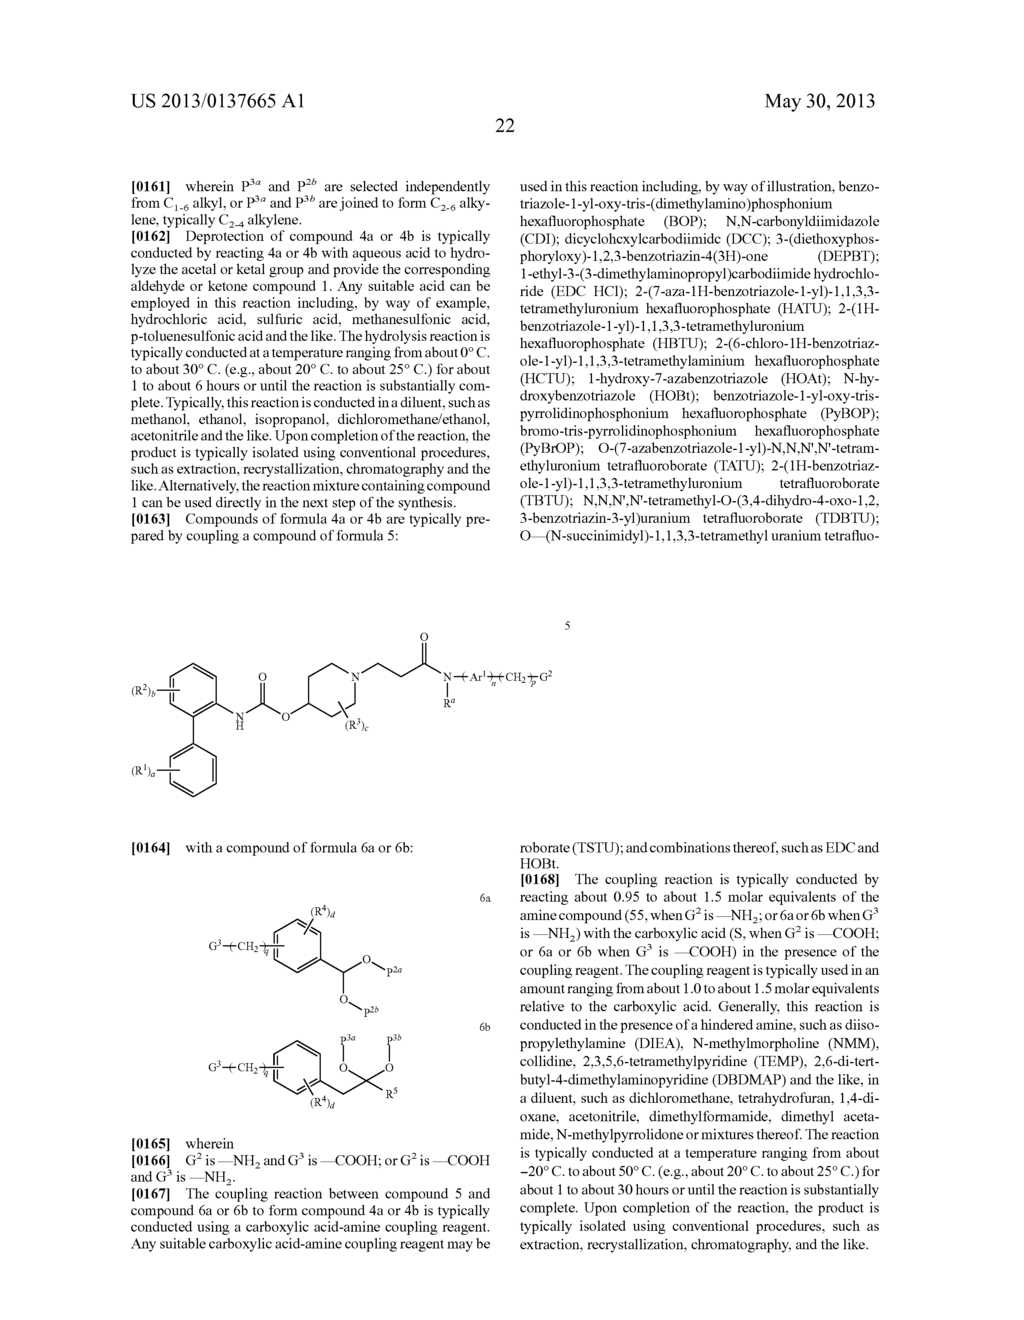 DIAMIDE COMPOUNDS HAVING MUSCARINIC RECEPTOR ANTAGONIST AND BETA2     ADRENERGIC RECEPTOR AGONIST ACTIVITY - diagram, schematic, and image 23